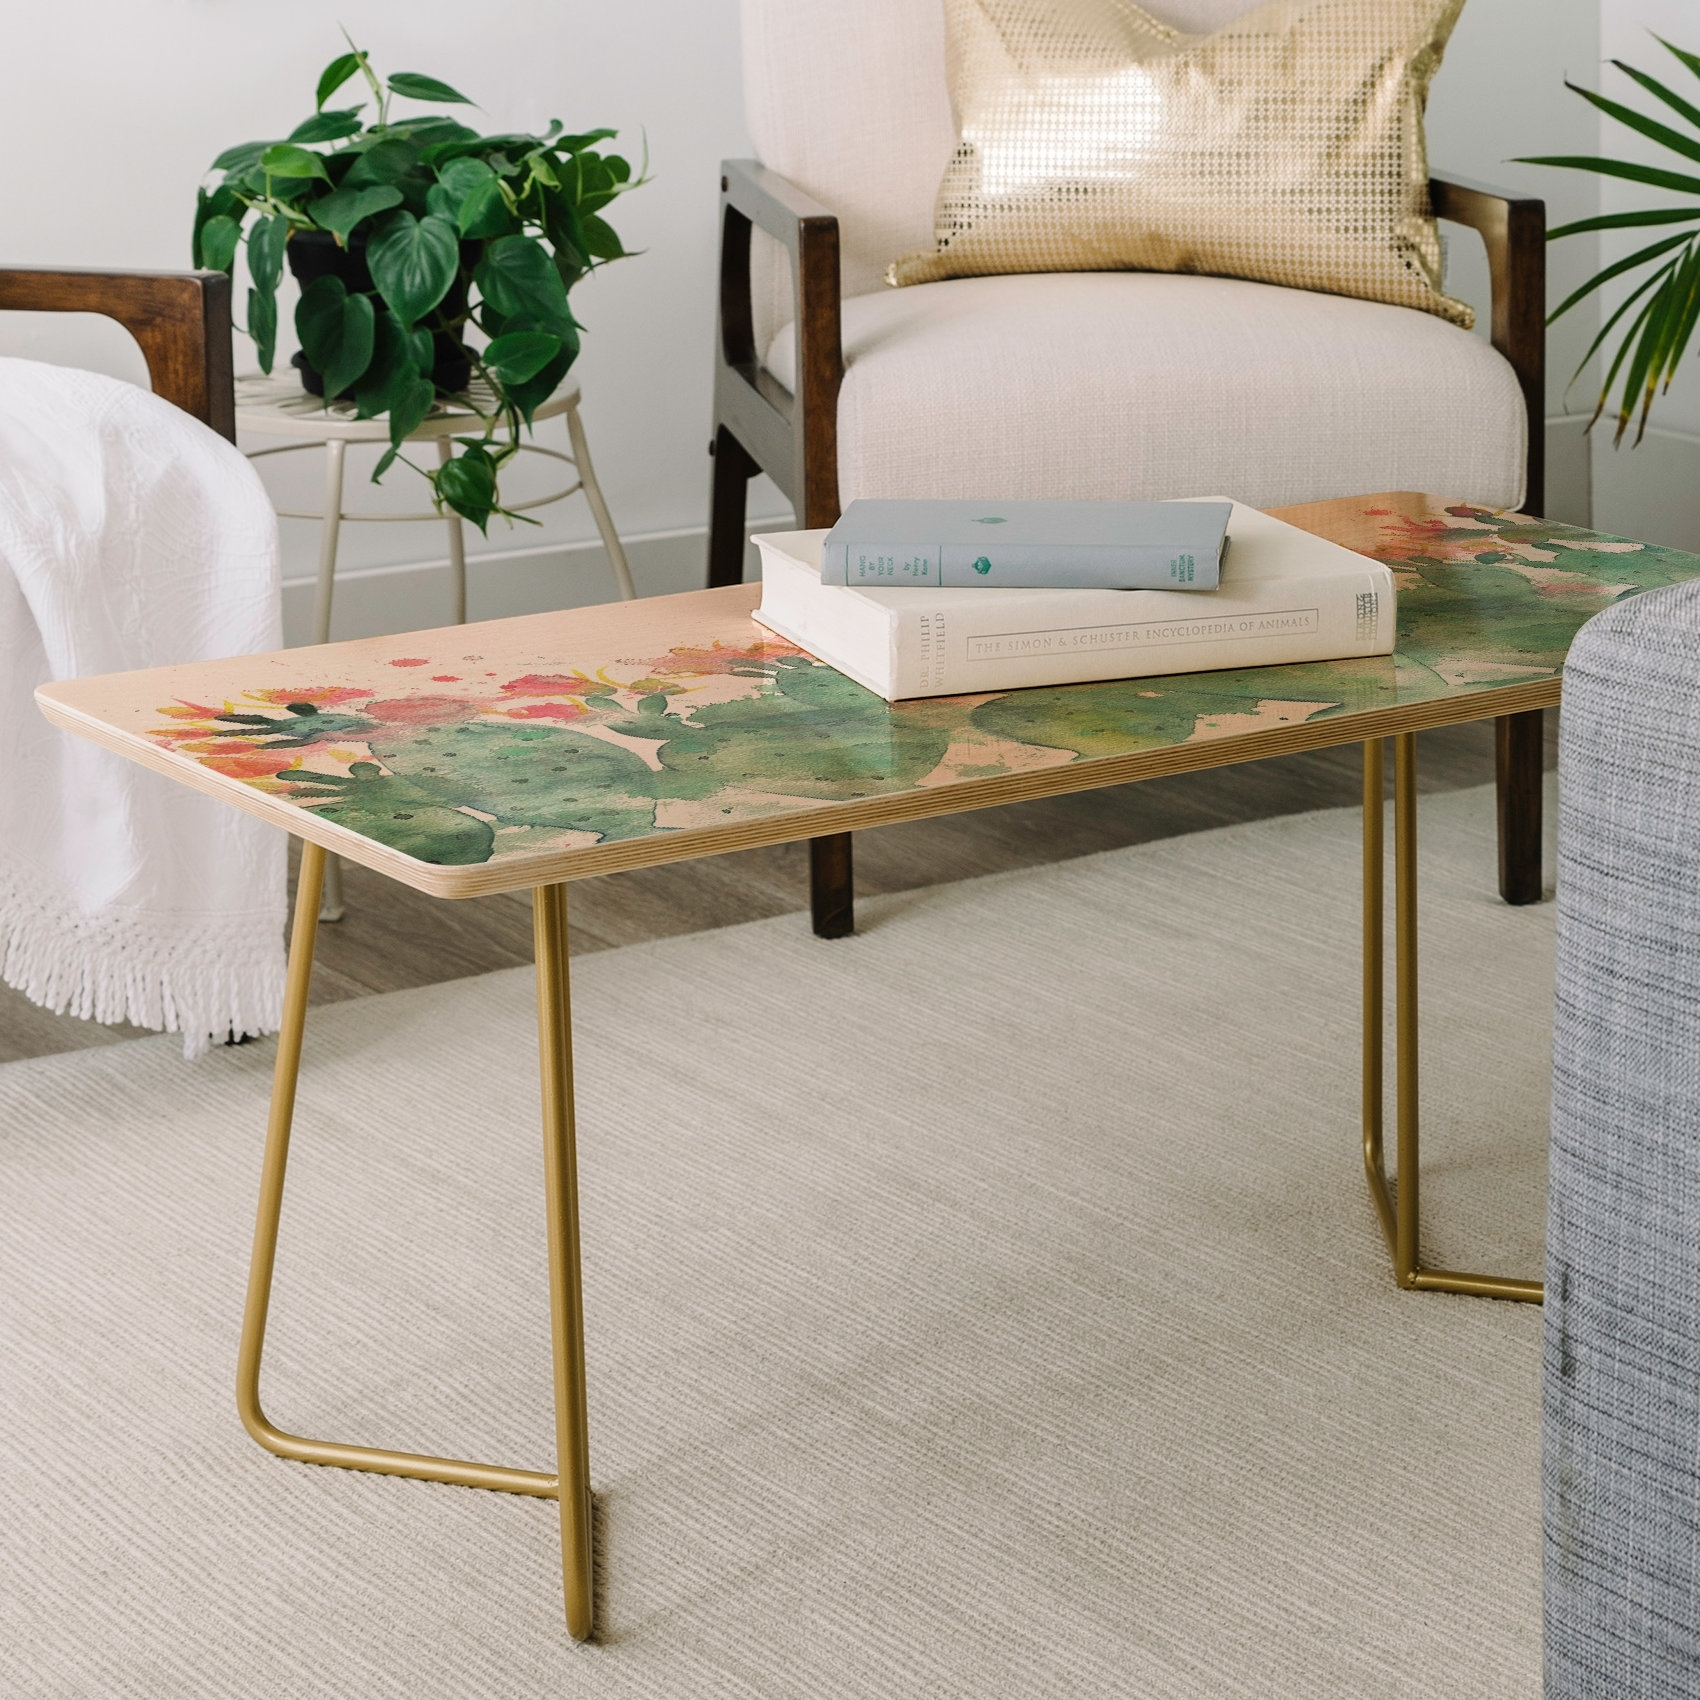 East Urban Home Dash And Ash Messy Cactus Coffee Table | Wayfair within Cacti Brass Coffee Tables (Image 12 of 30)